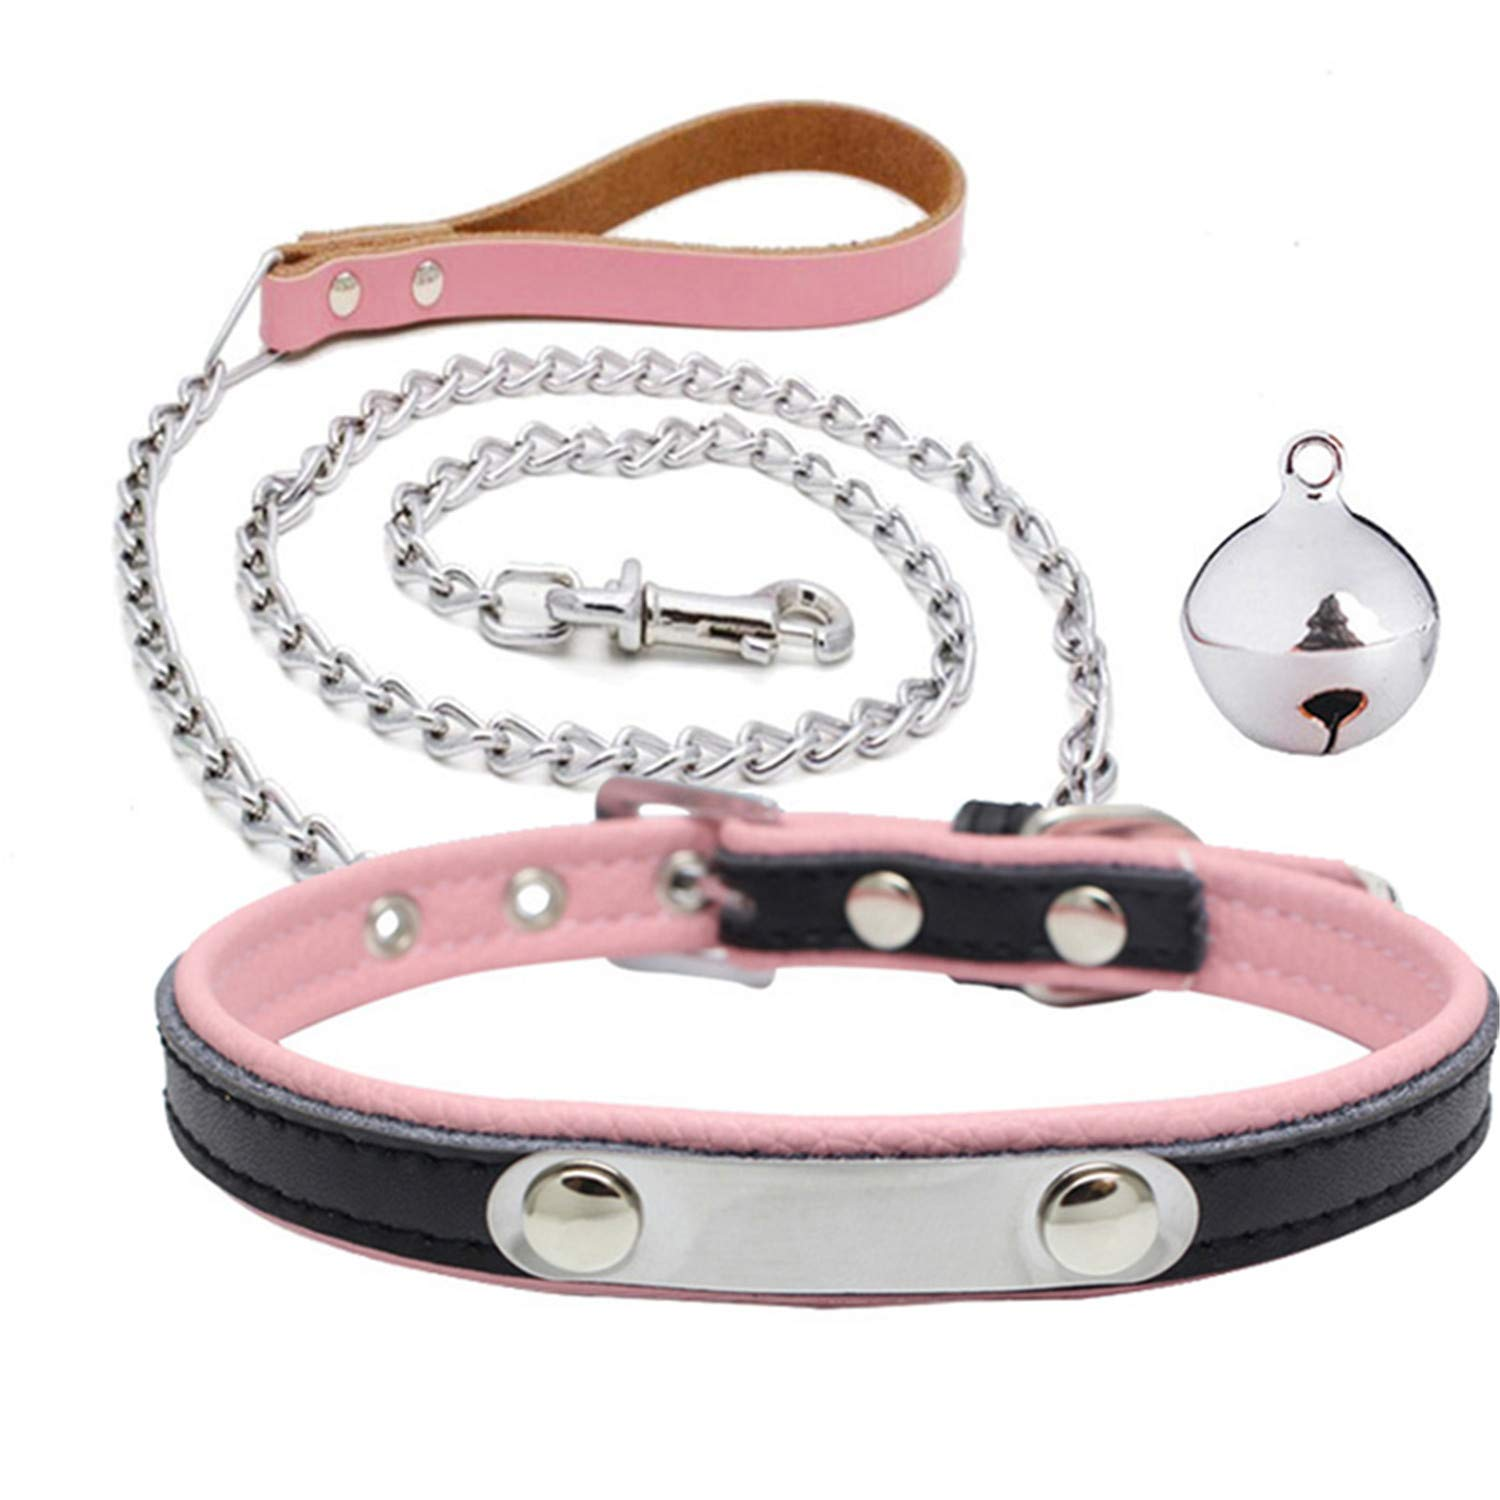 QIHUOKEJU Fashion PU Leather BDSM Collar & Metal Chain Leash Erotic Toys Fetish Slave Torture Sex Toys